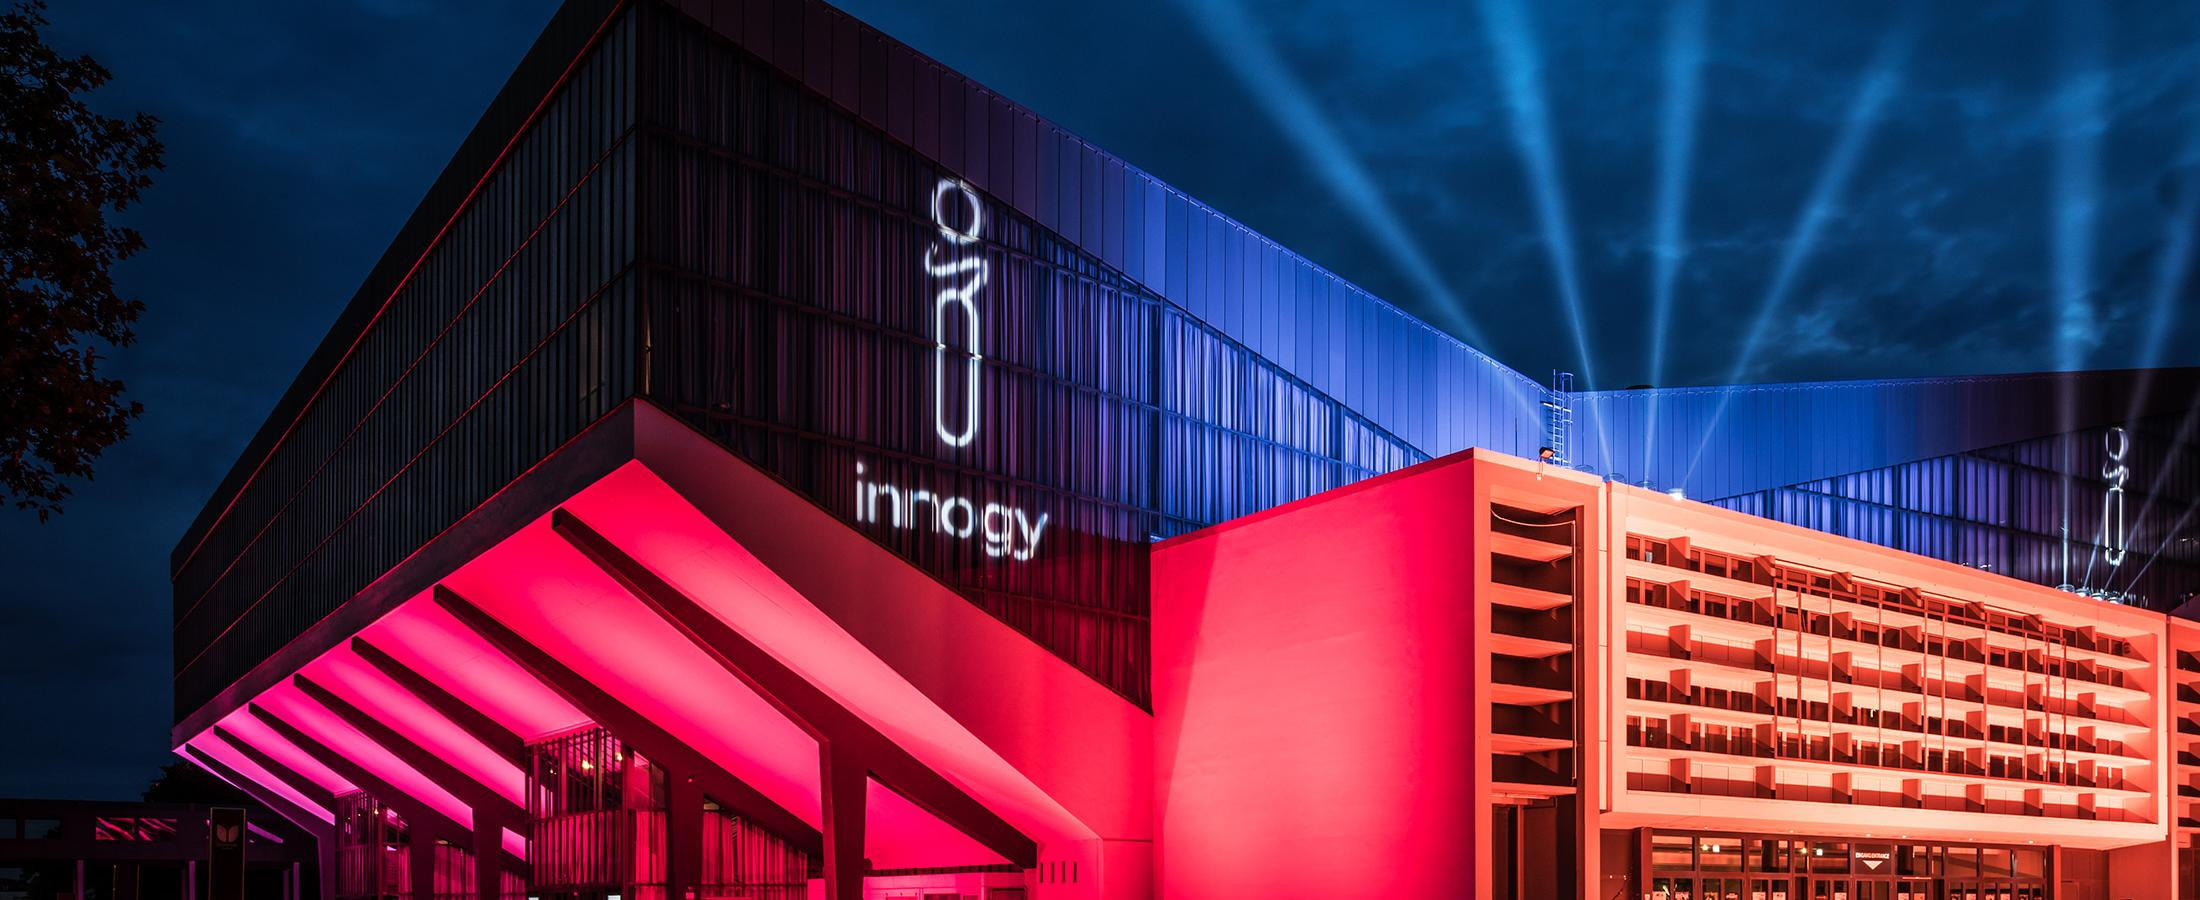 Onboarding at Innogy – Interview with Sebastian Hopp